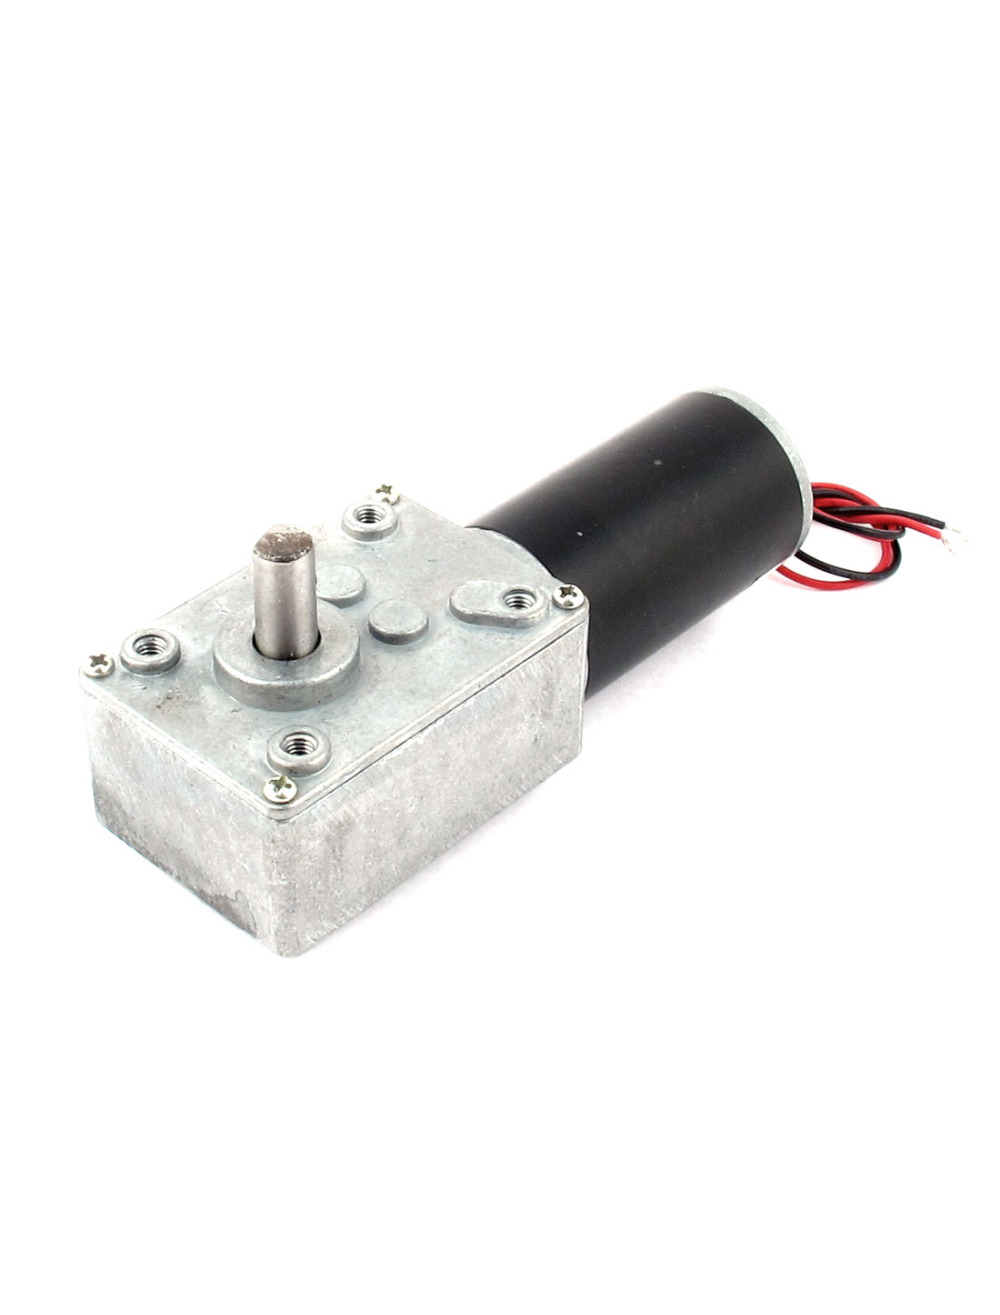 Uxcell Newest 1 Pcs Gear Box Motor DC 12V 14RPM High Torque Electric Power Speed Reduce цена